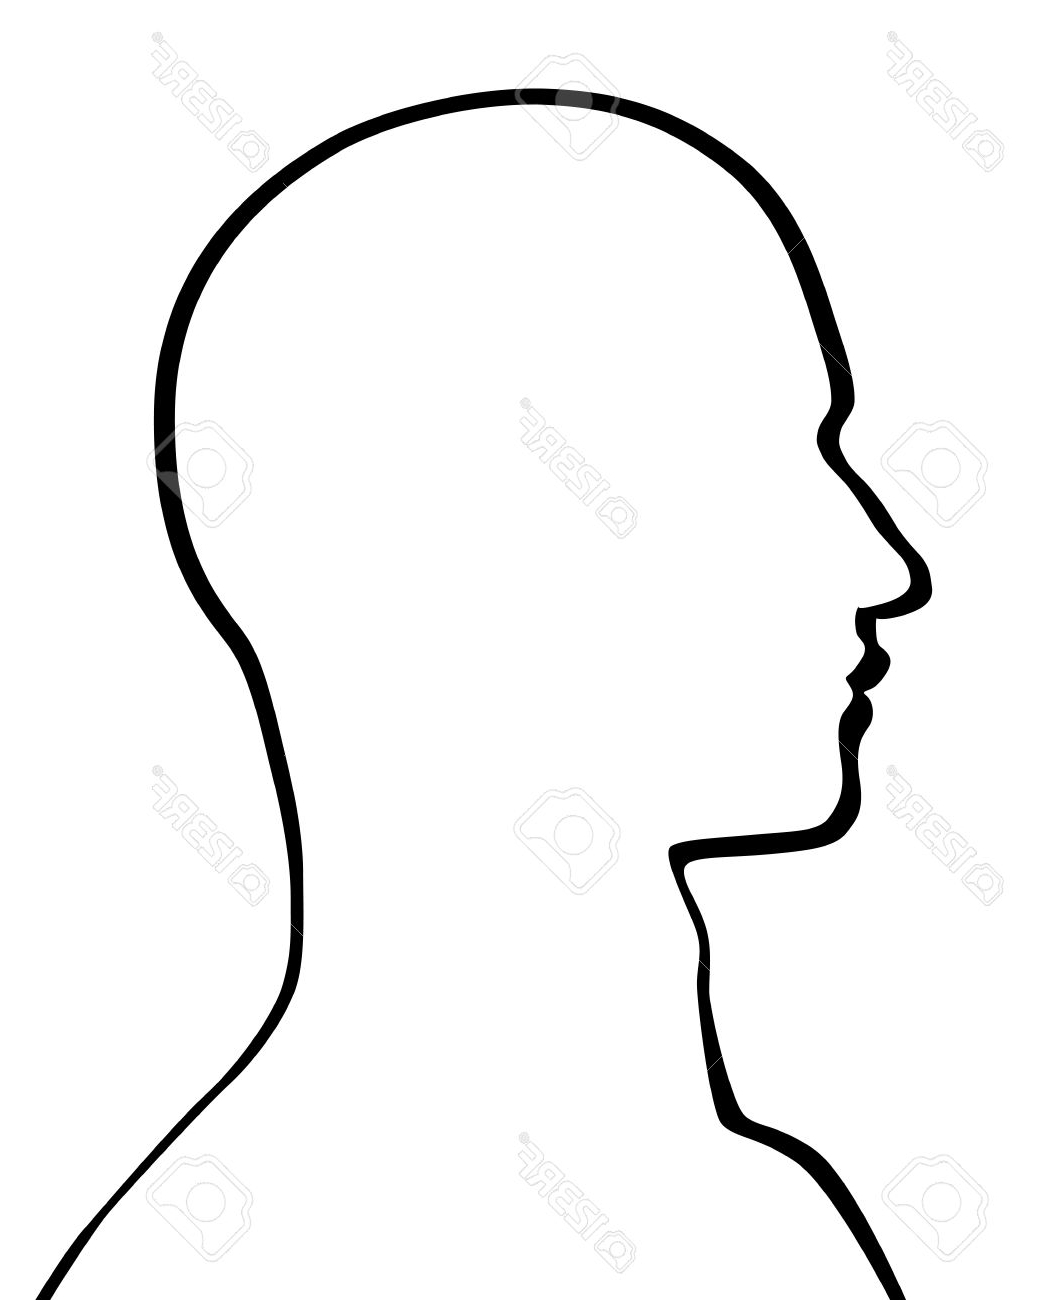 Human Face Outline | Free download best Human Face Outline on ... svg free download